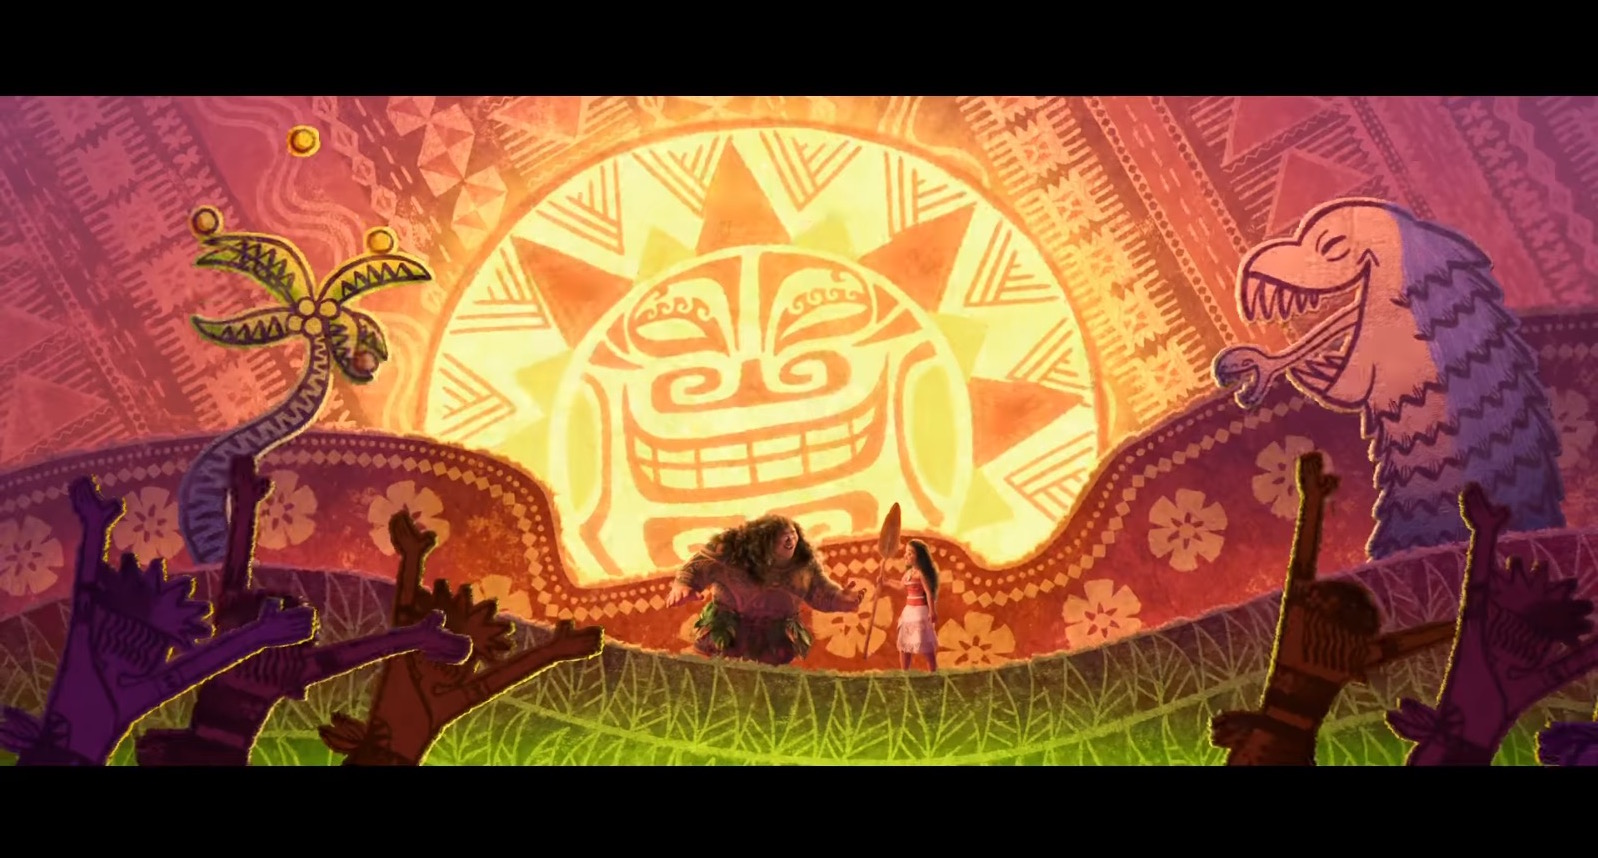 Drawn animation in Moana.jpg